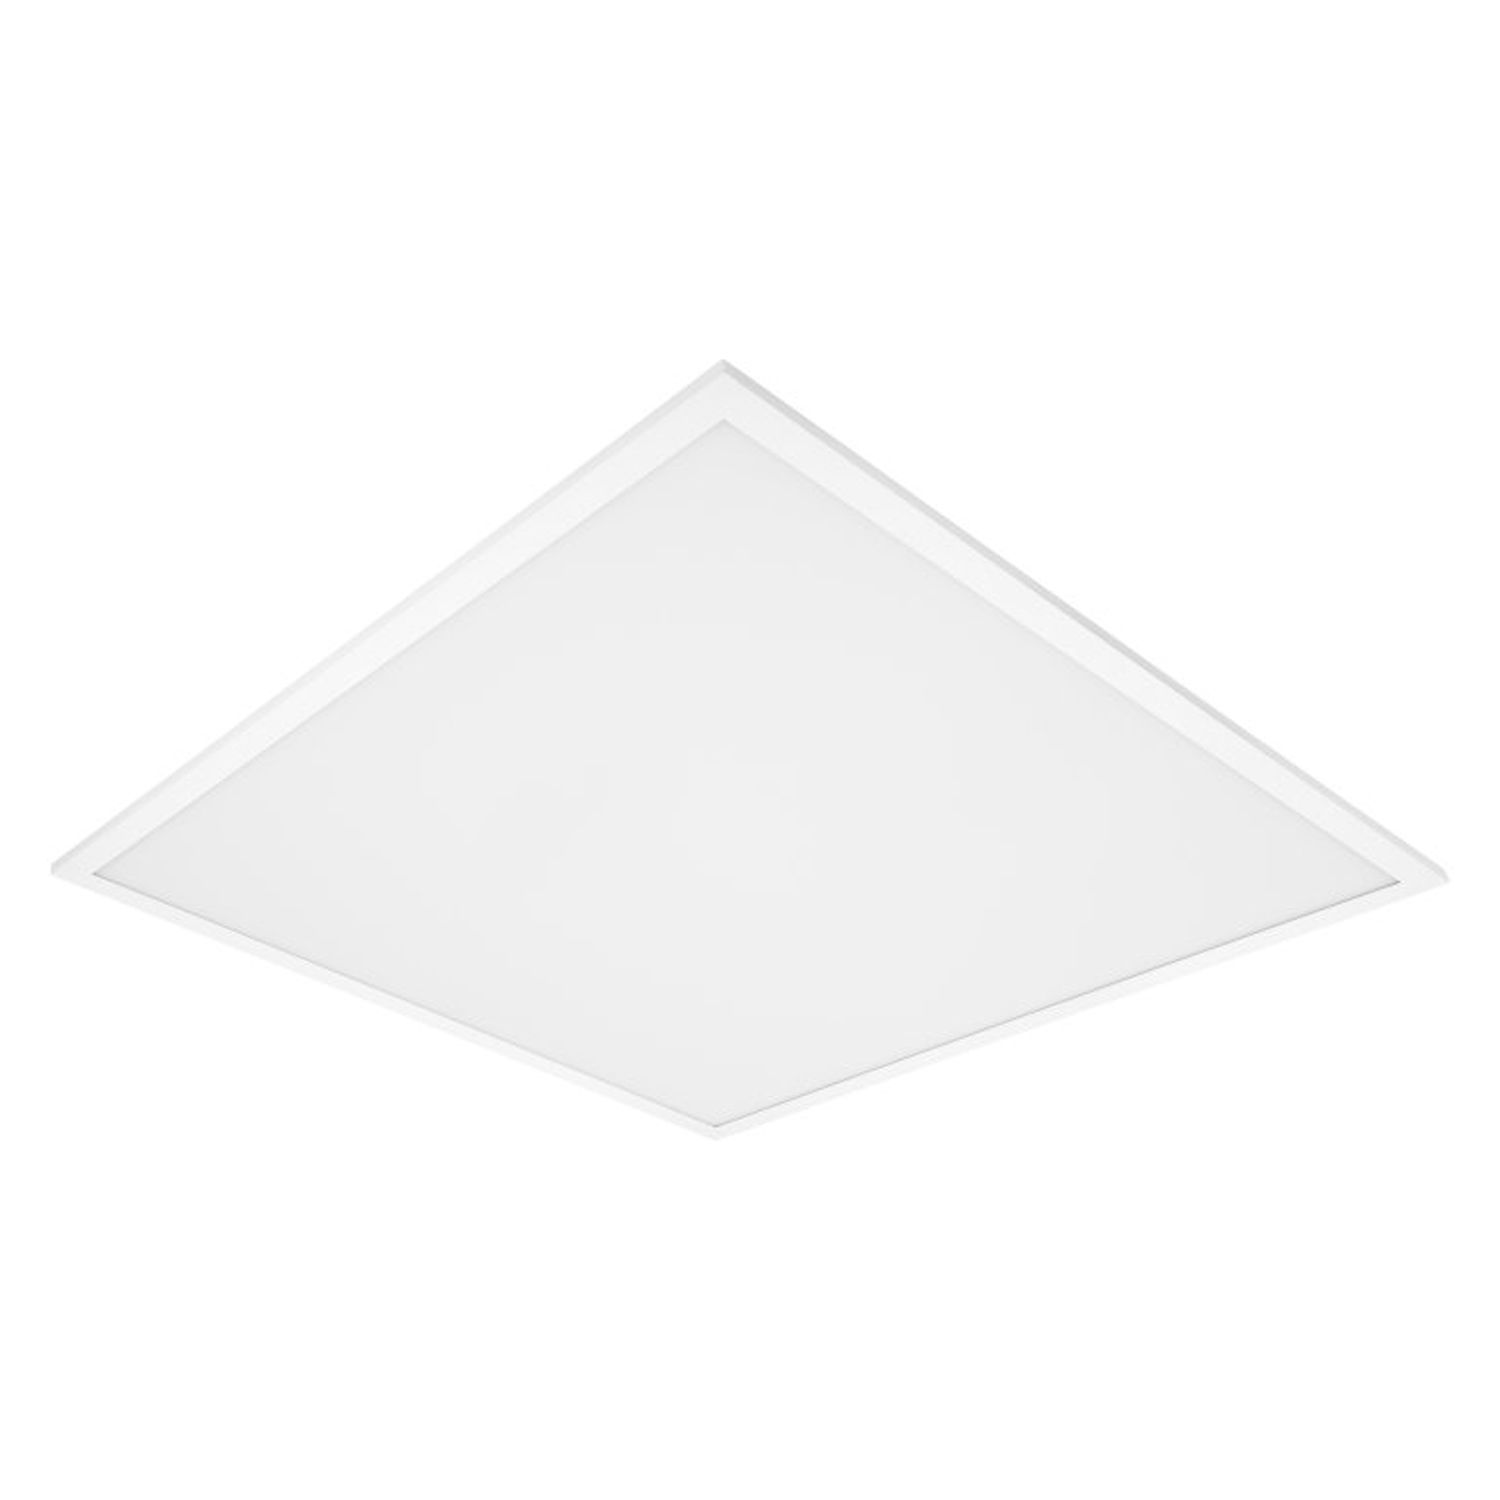 Ledvance LED Panel Performance 62.5x62.5cm 3000K 36W | Warm White